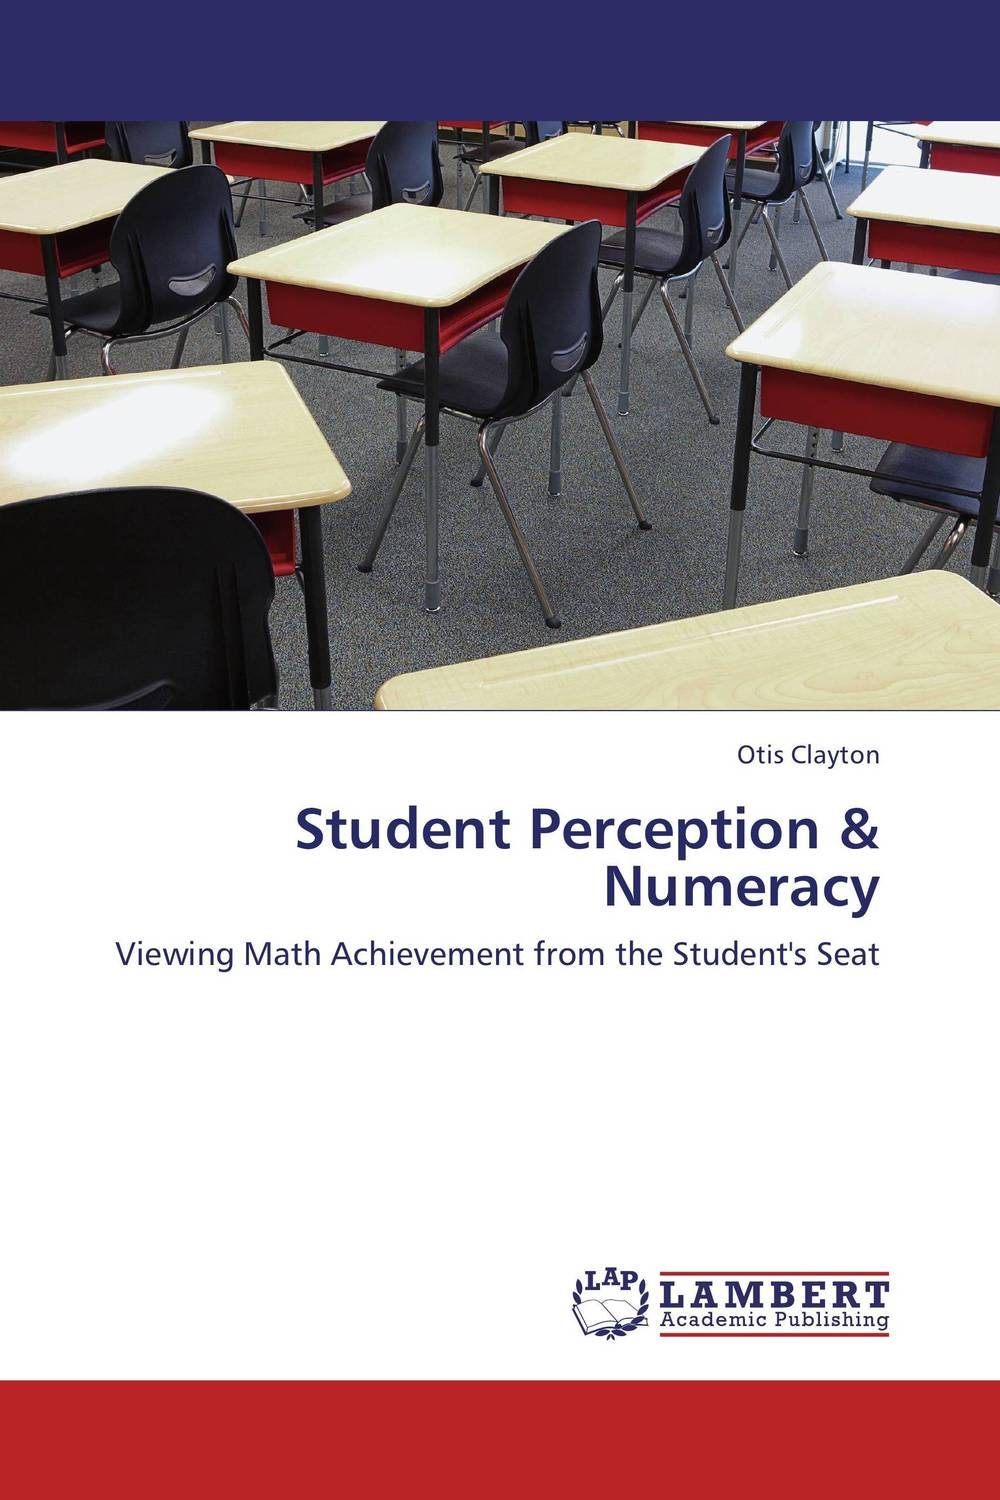 Student Perception & Numeracy christopher danielson common core math for parents for dummies with videos online